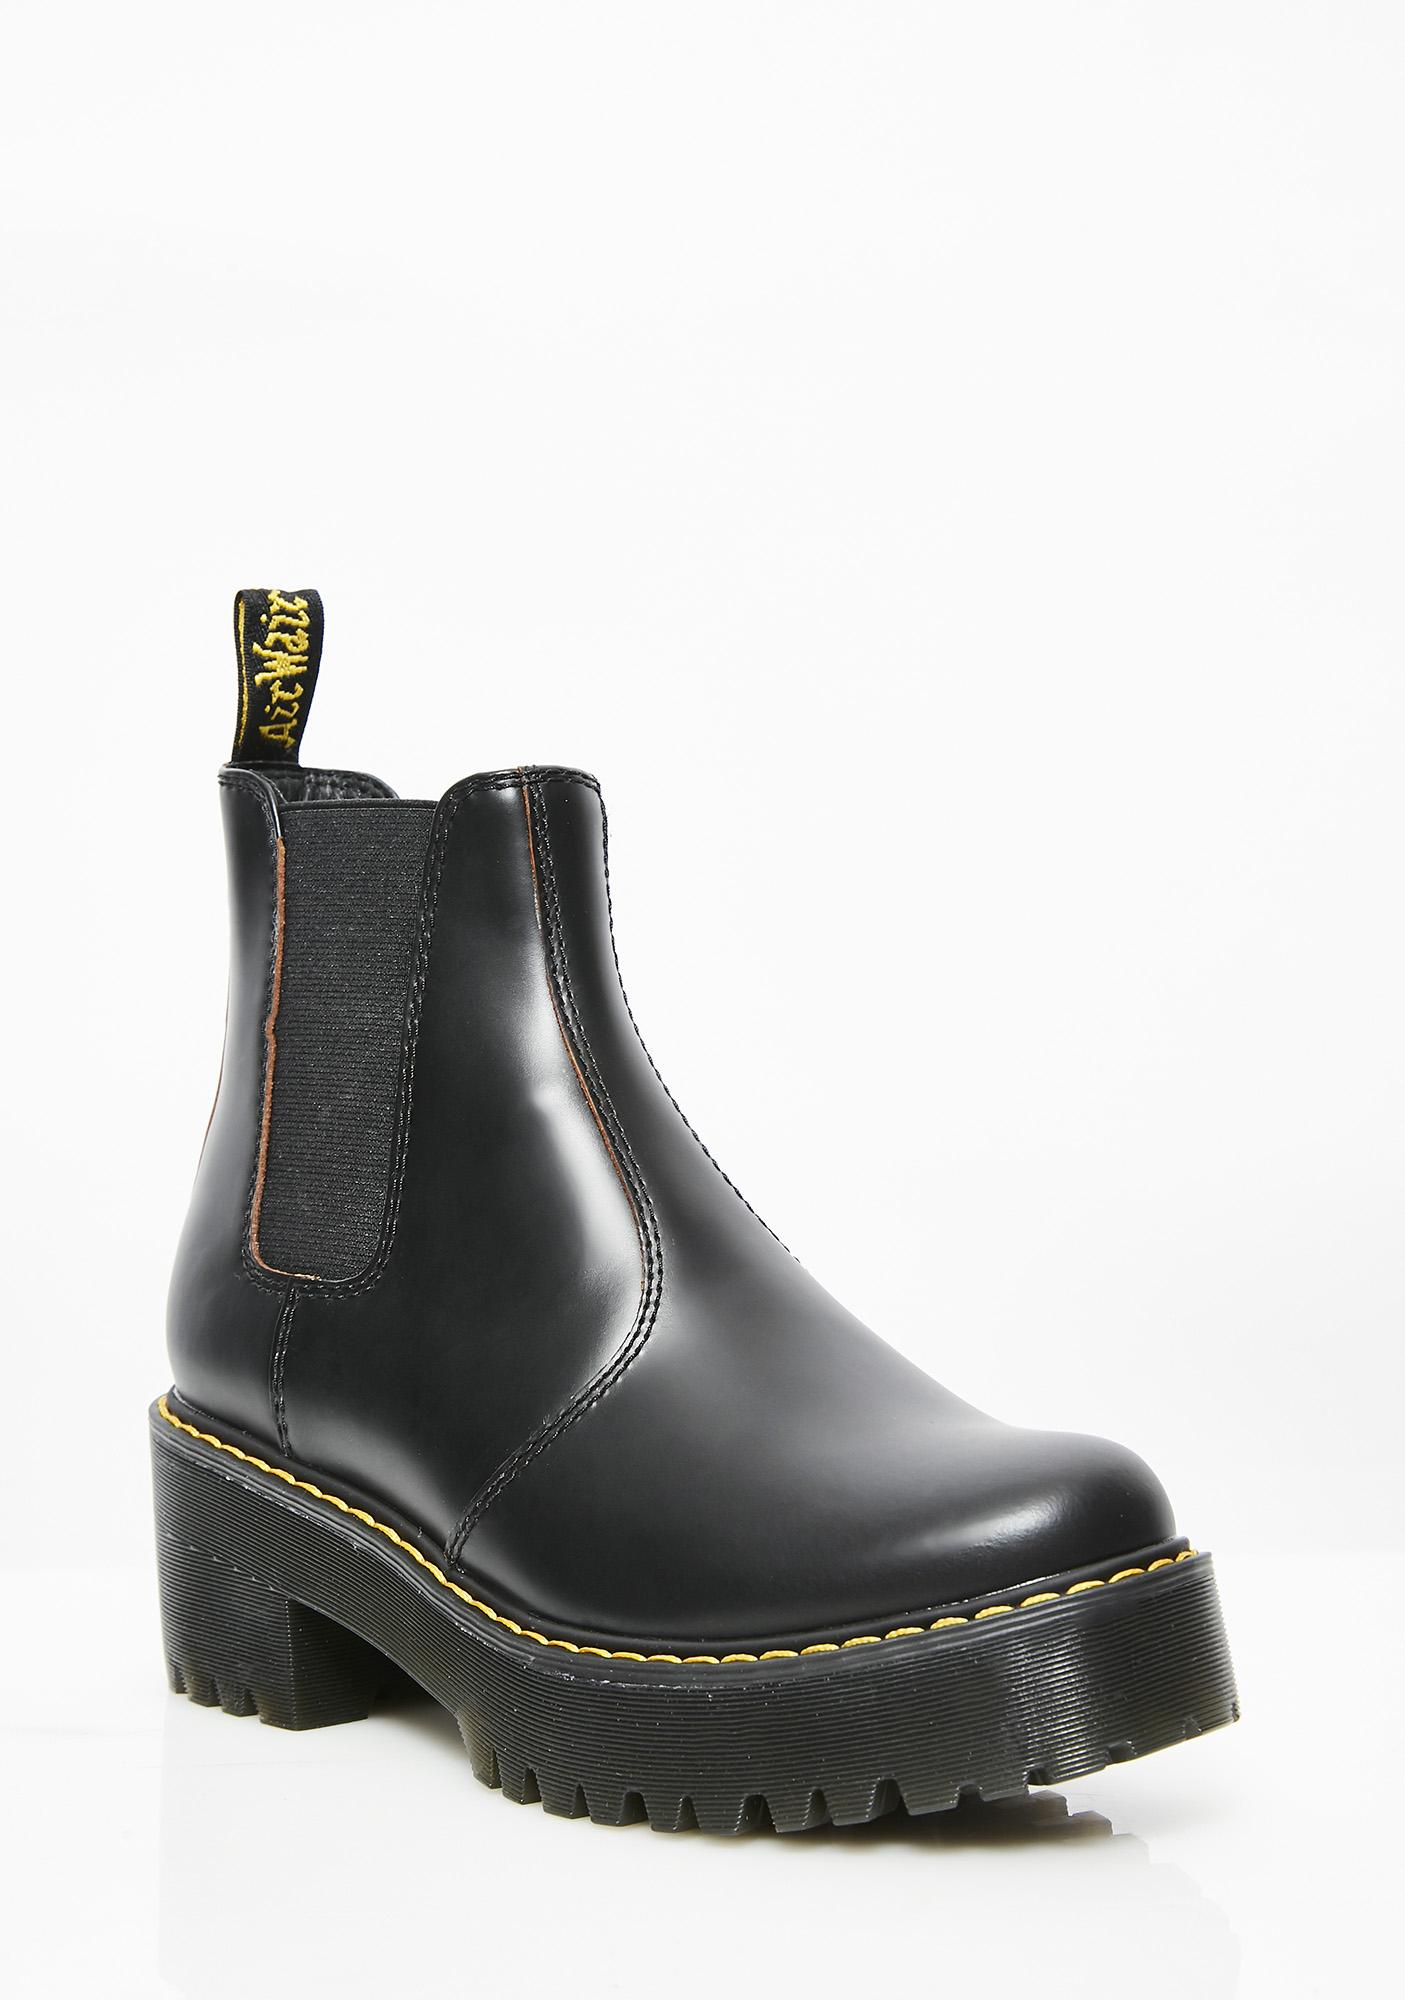 Dr. Martens Rometty Boots